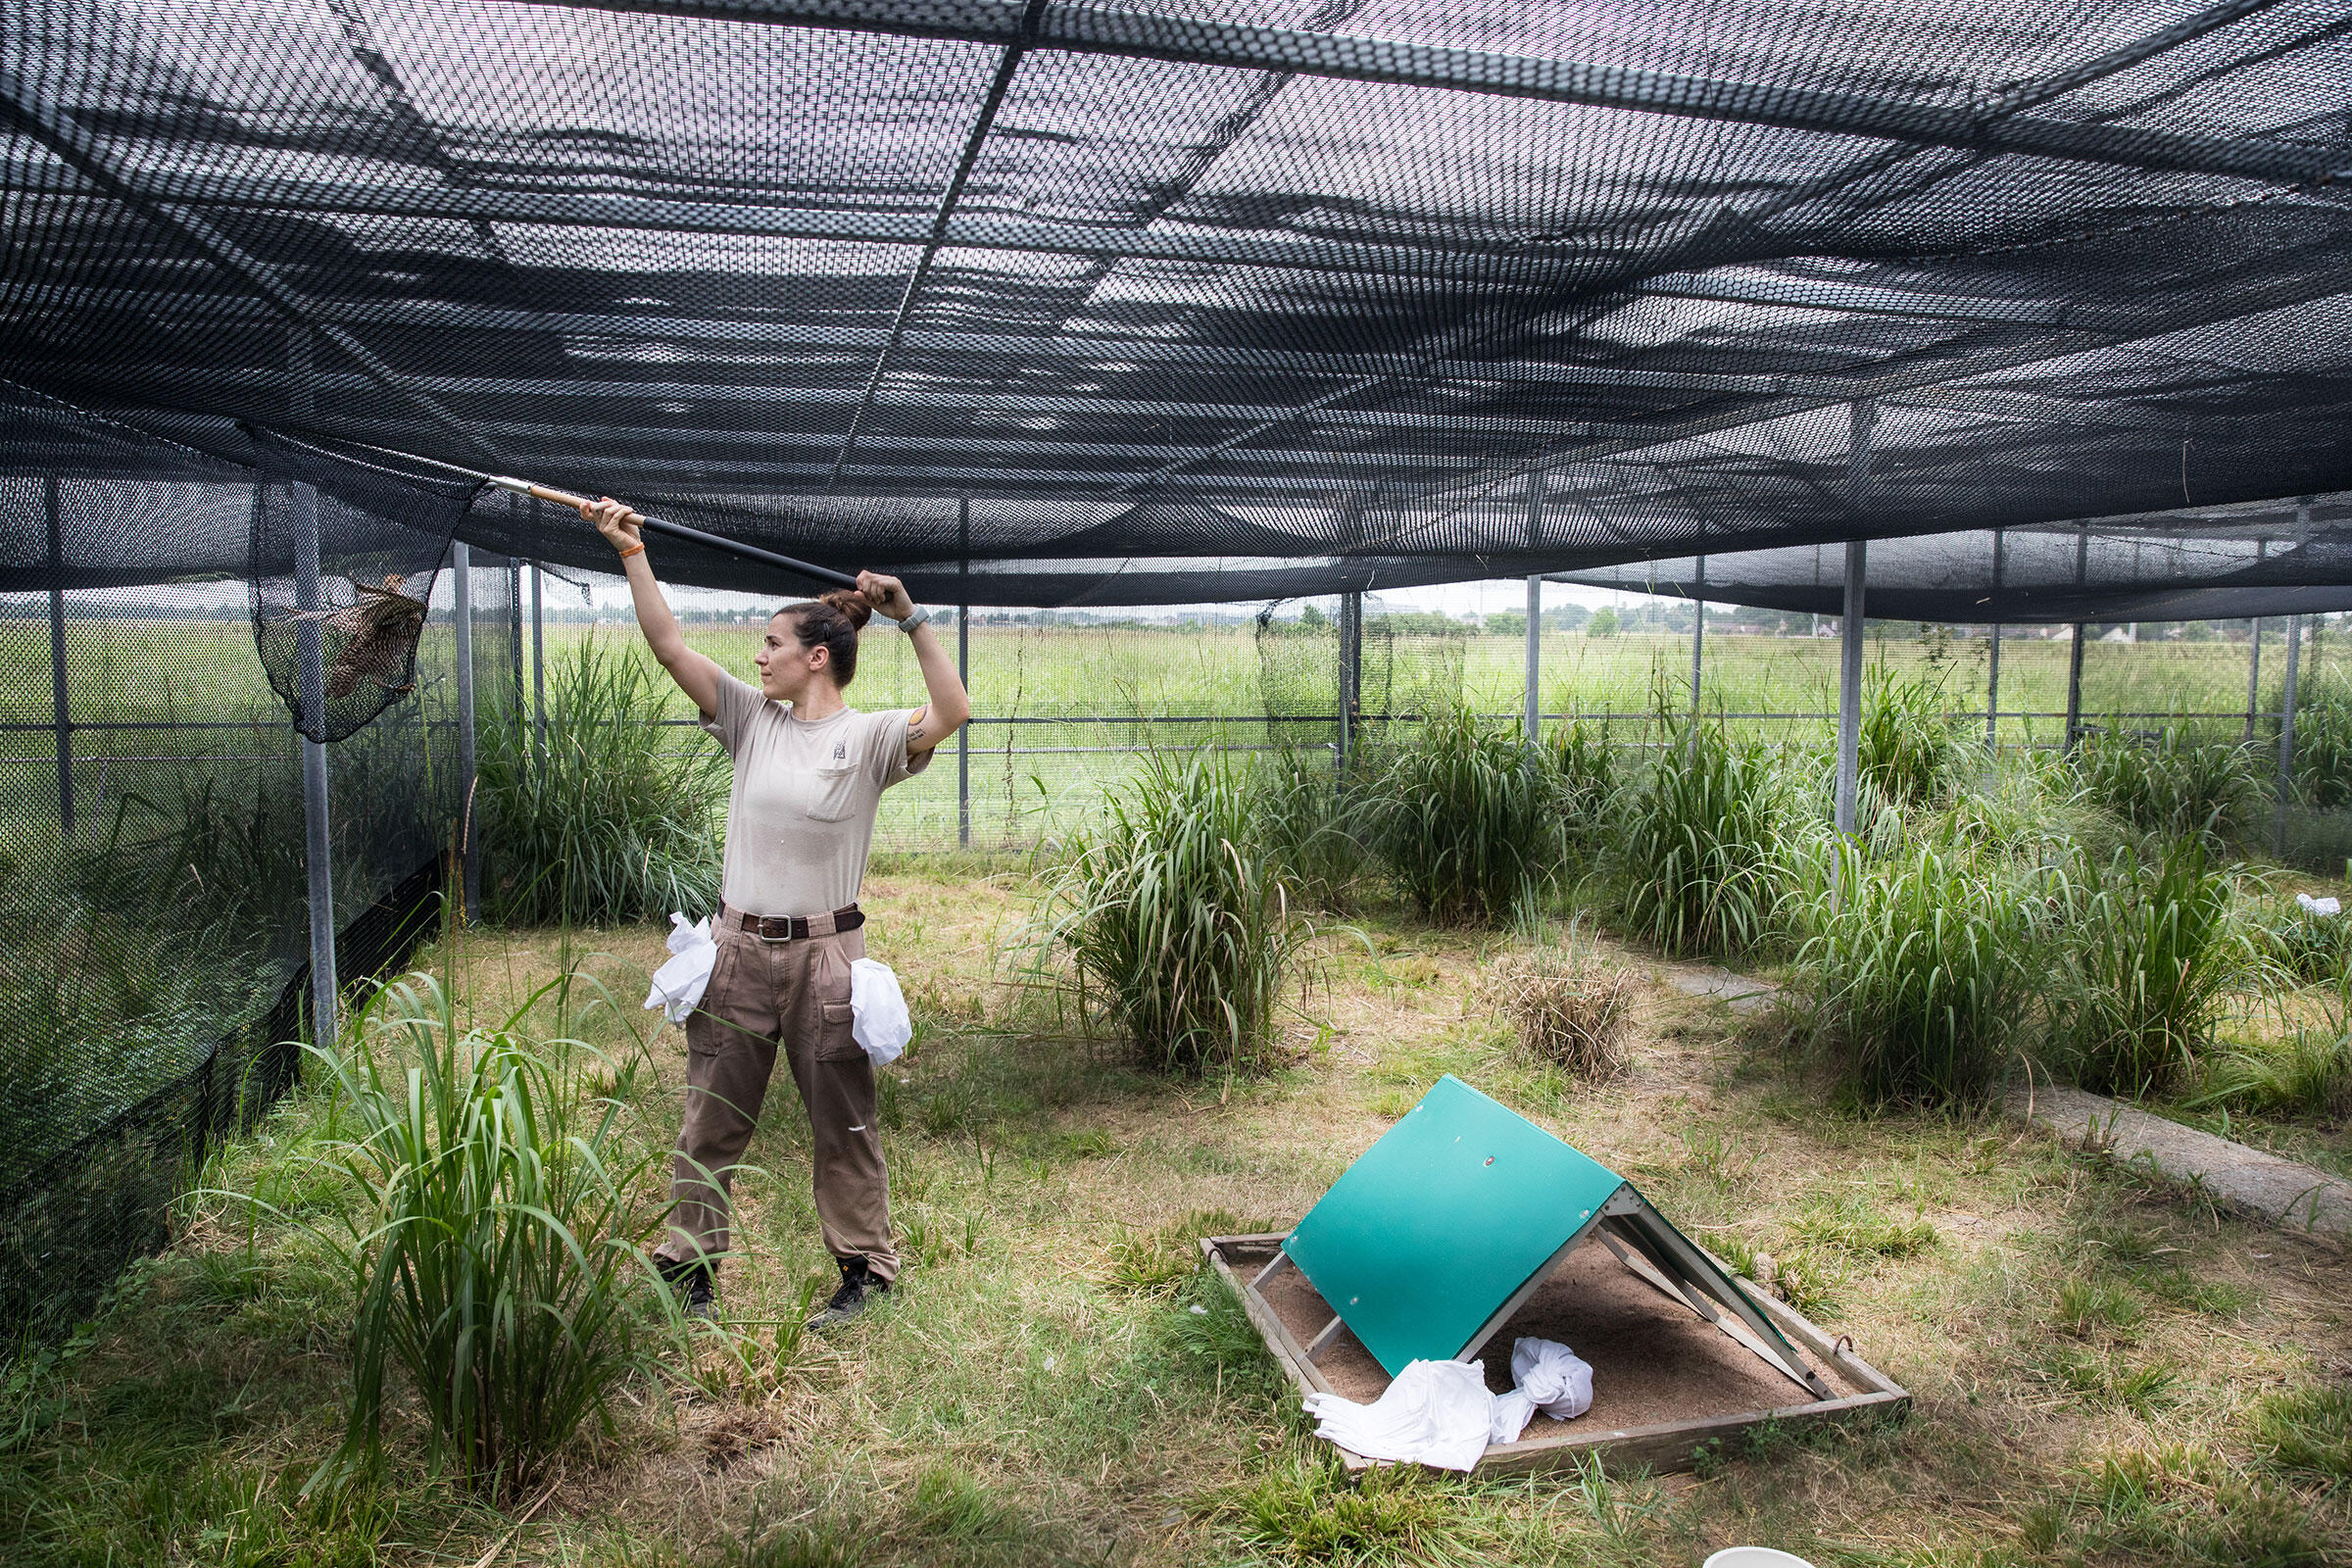 April Zimpel of the Houston Zoo catches an Attwater's Prairie-Chicken in a breeding pen at NASA. The pens are planted with tall grasses so female chickens have places to hide and rest. Scott Dalton